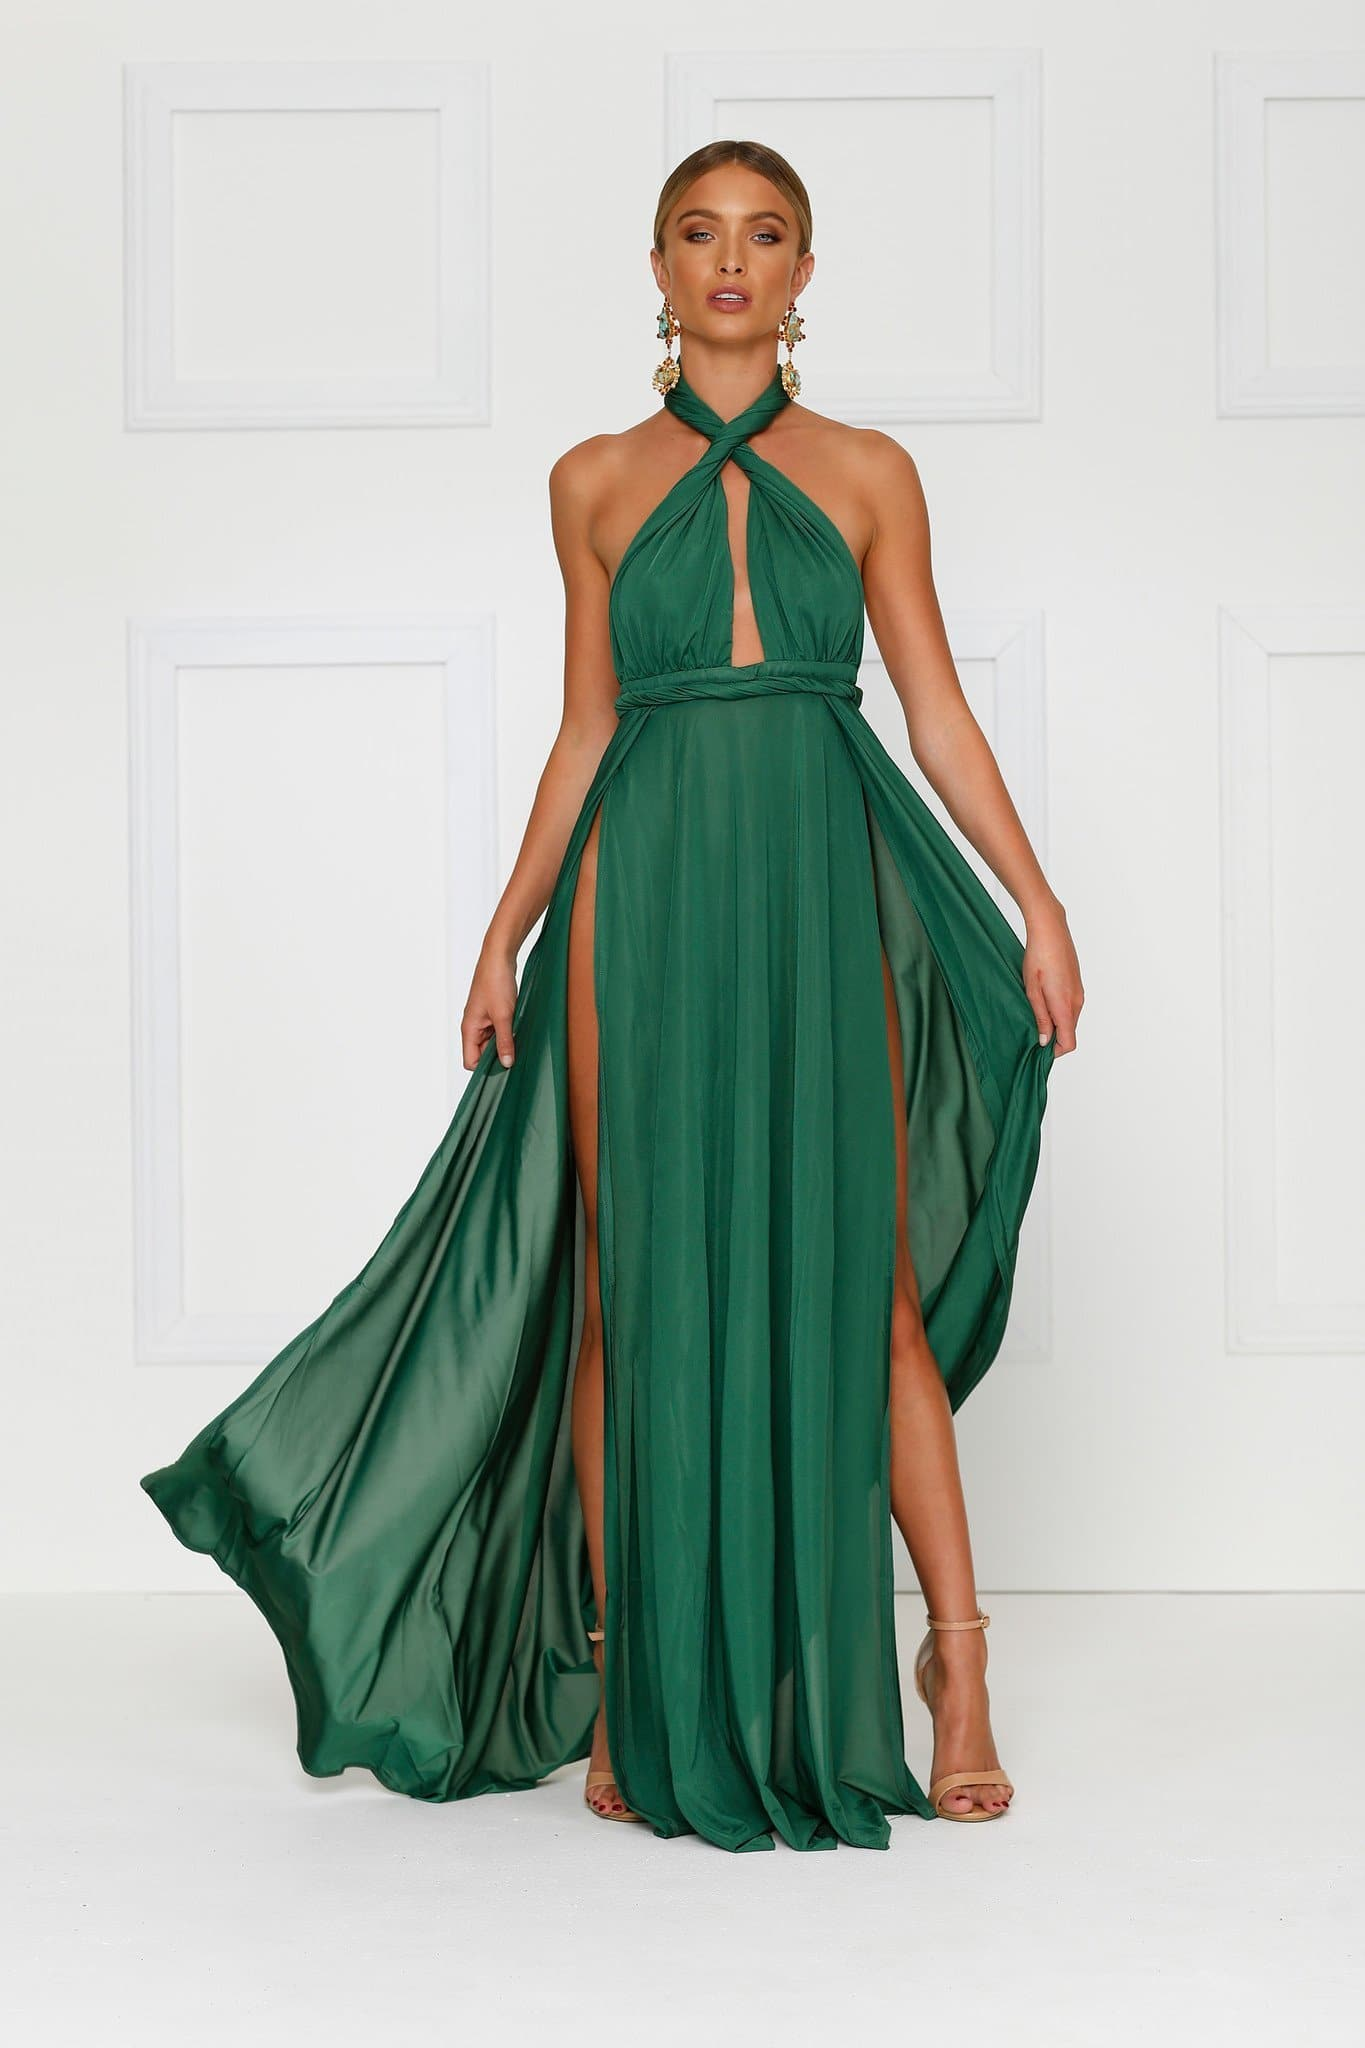 Catalina Emerald multi way maxi dress for bridesmaid, formal or prom available online